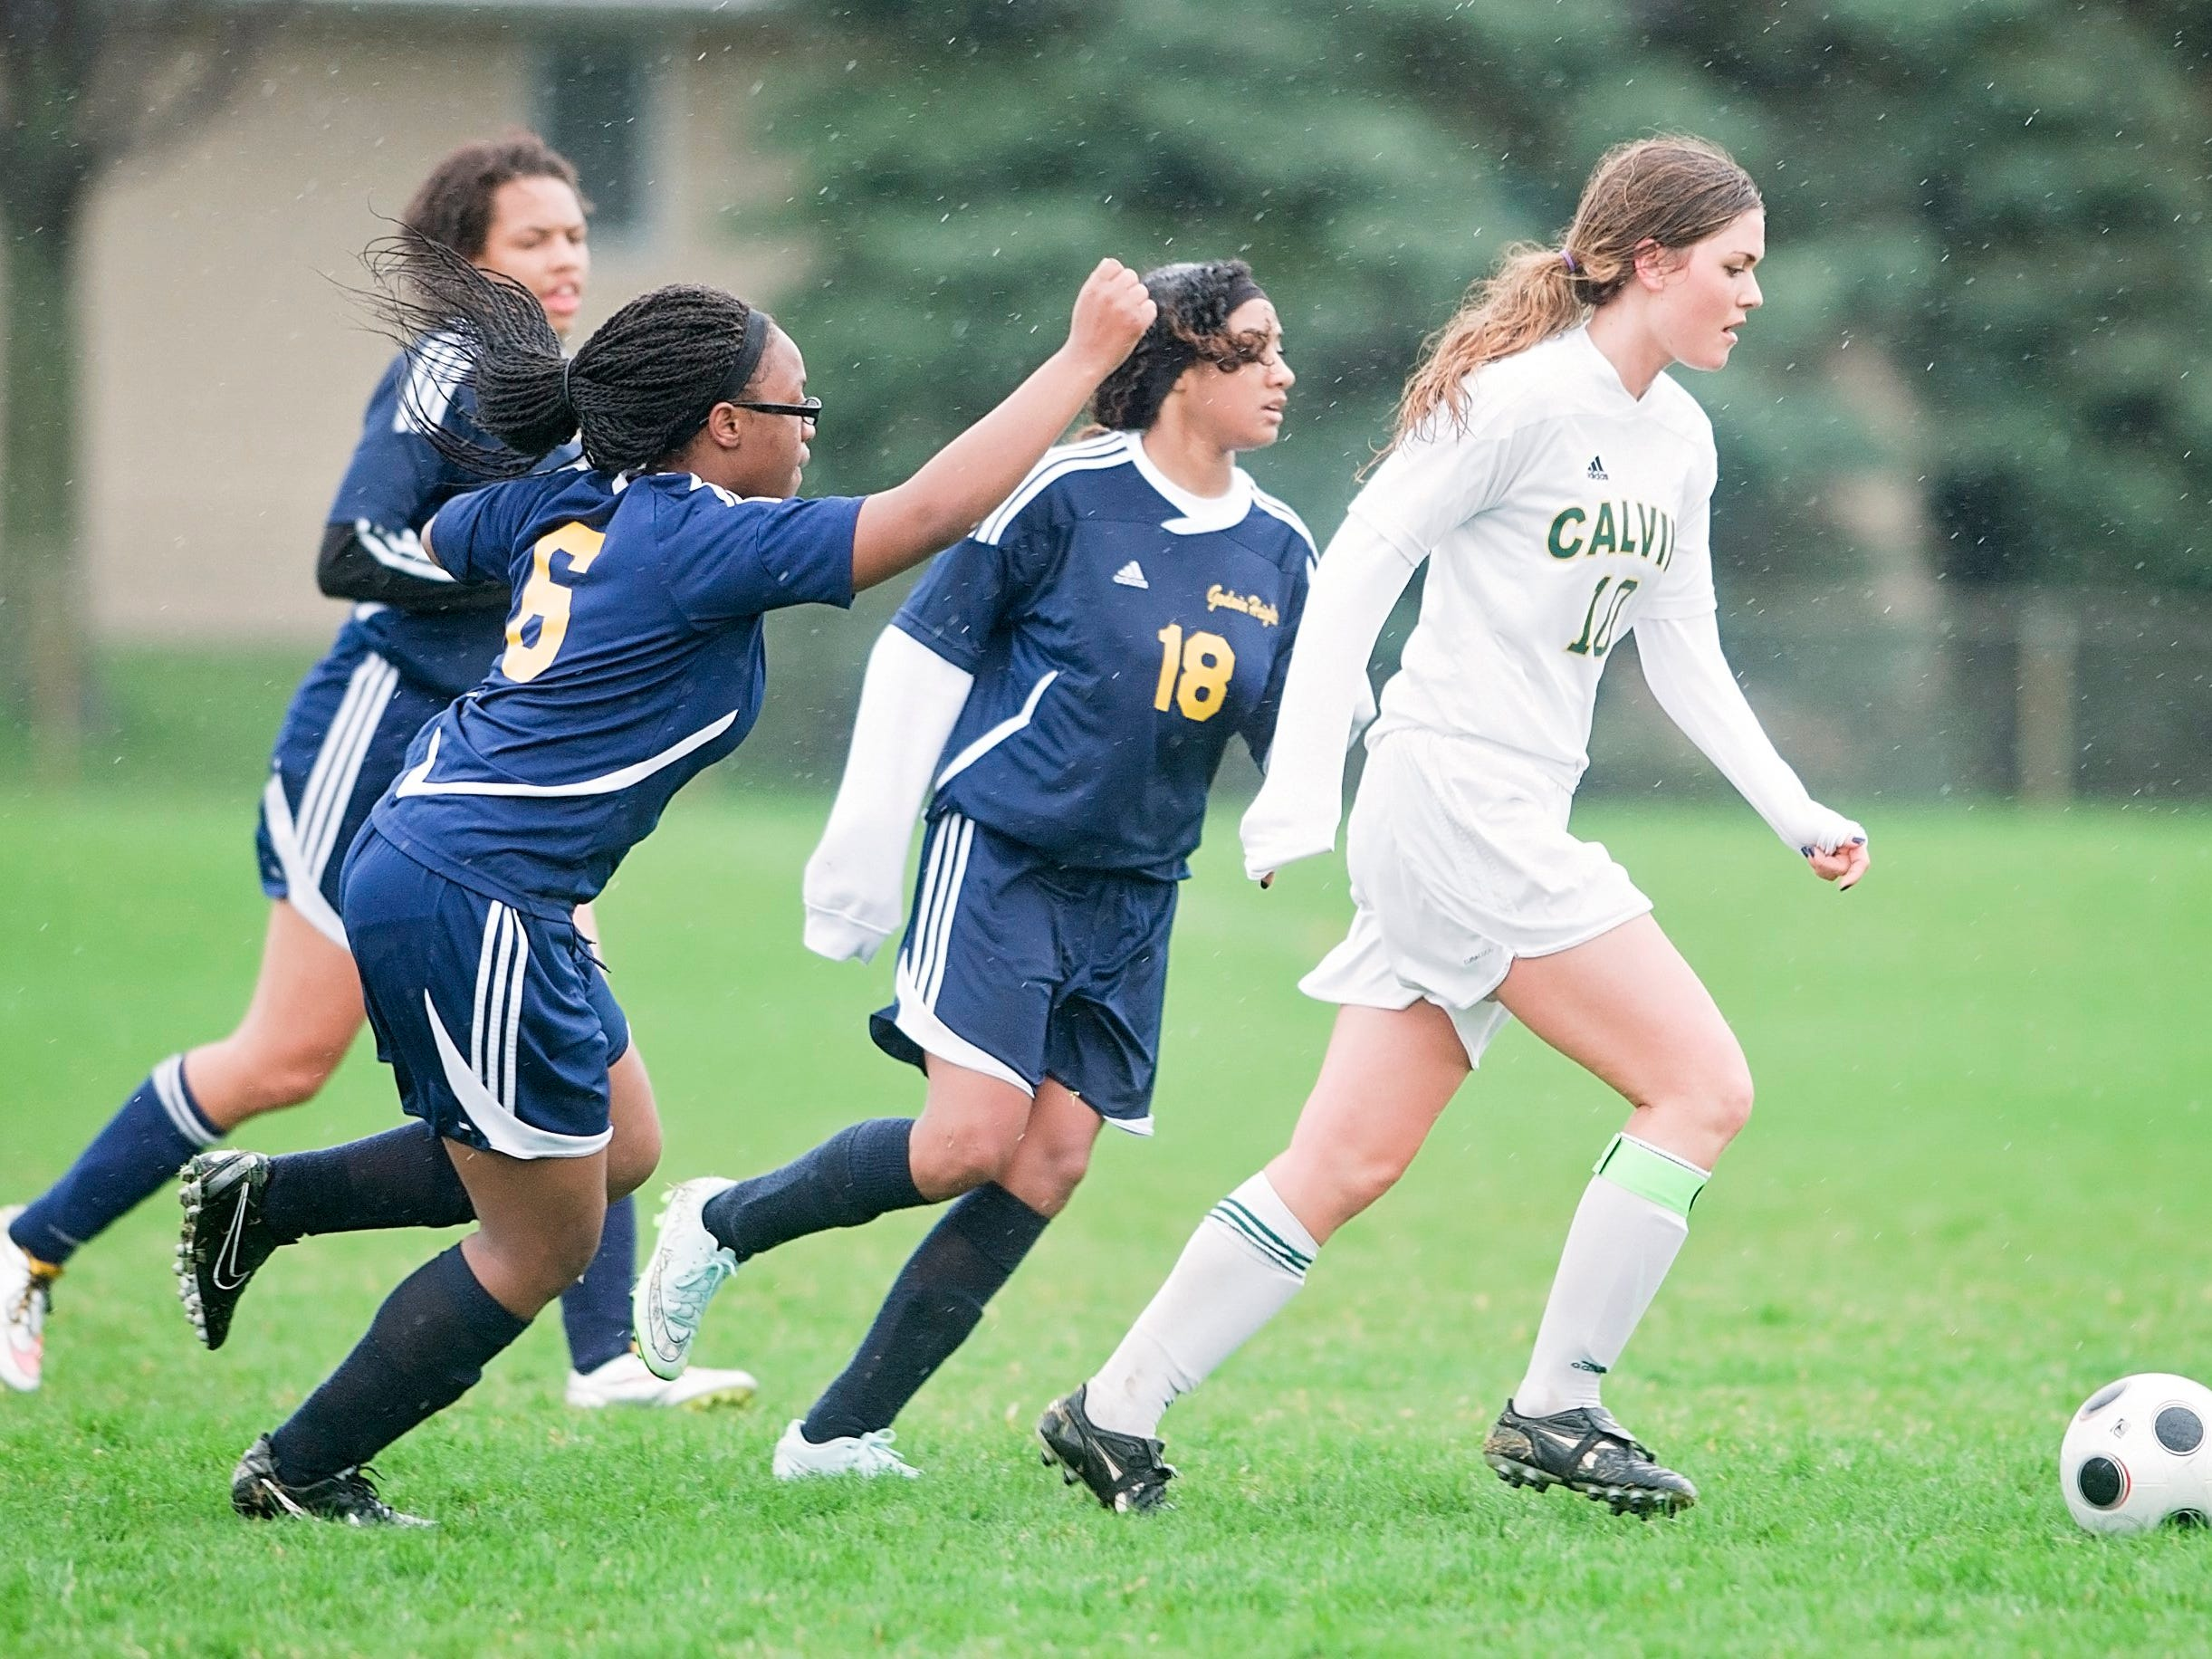 Calvin Christian's Morgan Buursma moves the ball upfield past a trio of Godwin Heights defenders during their game on Monday, April 20, 2015. Calvin Christian defeated Godwin Heights 8-0.(Erik Holladay / Special to the Free Press)